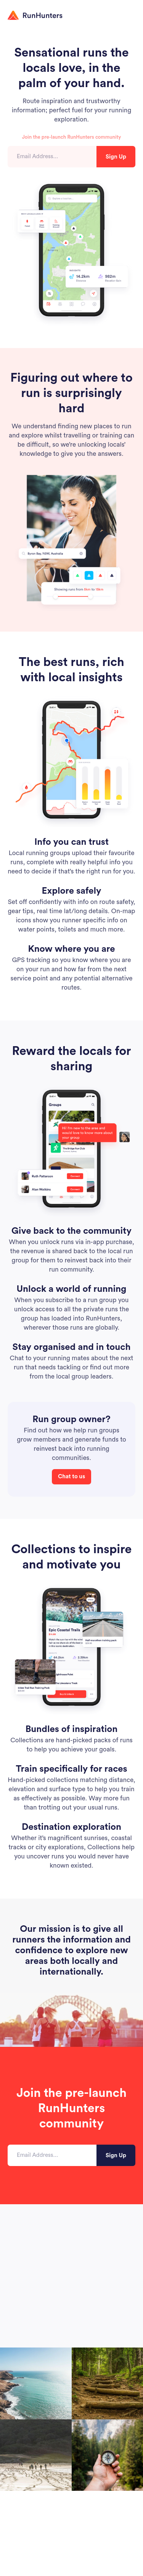 Example of Design for Hobbies & Leisure, Mobile Landing Page by runhunters.app   Mobile Landing Page Design